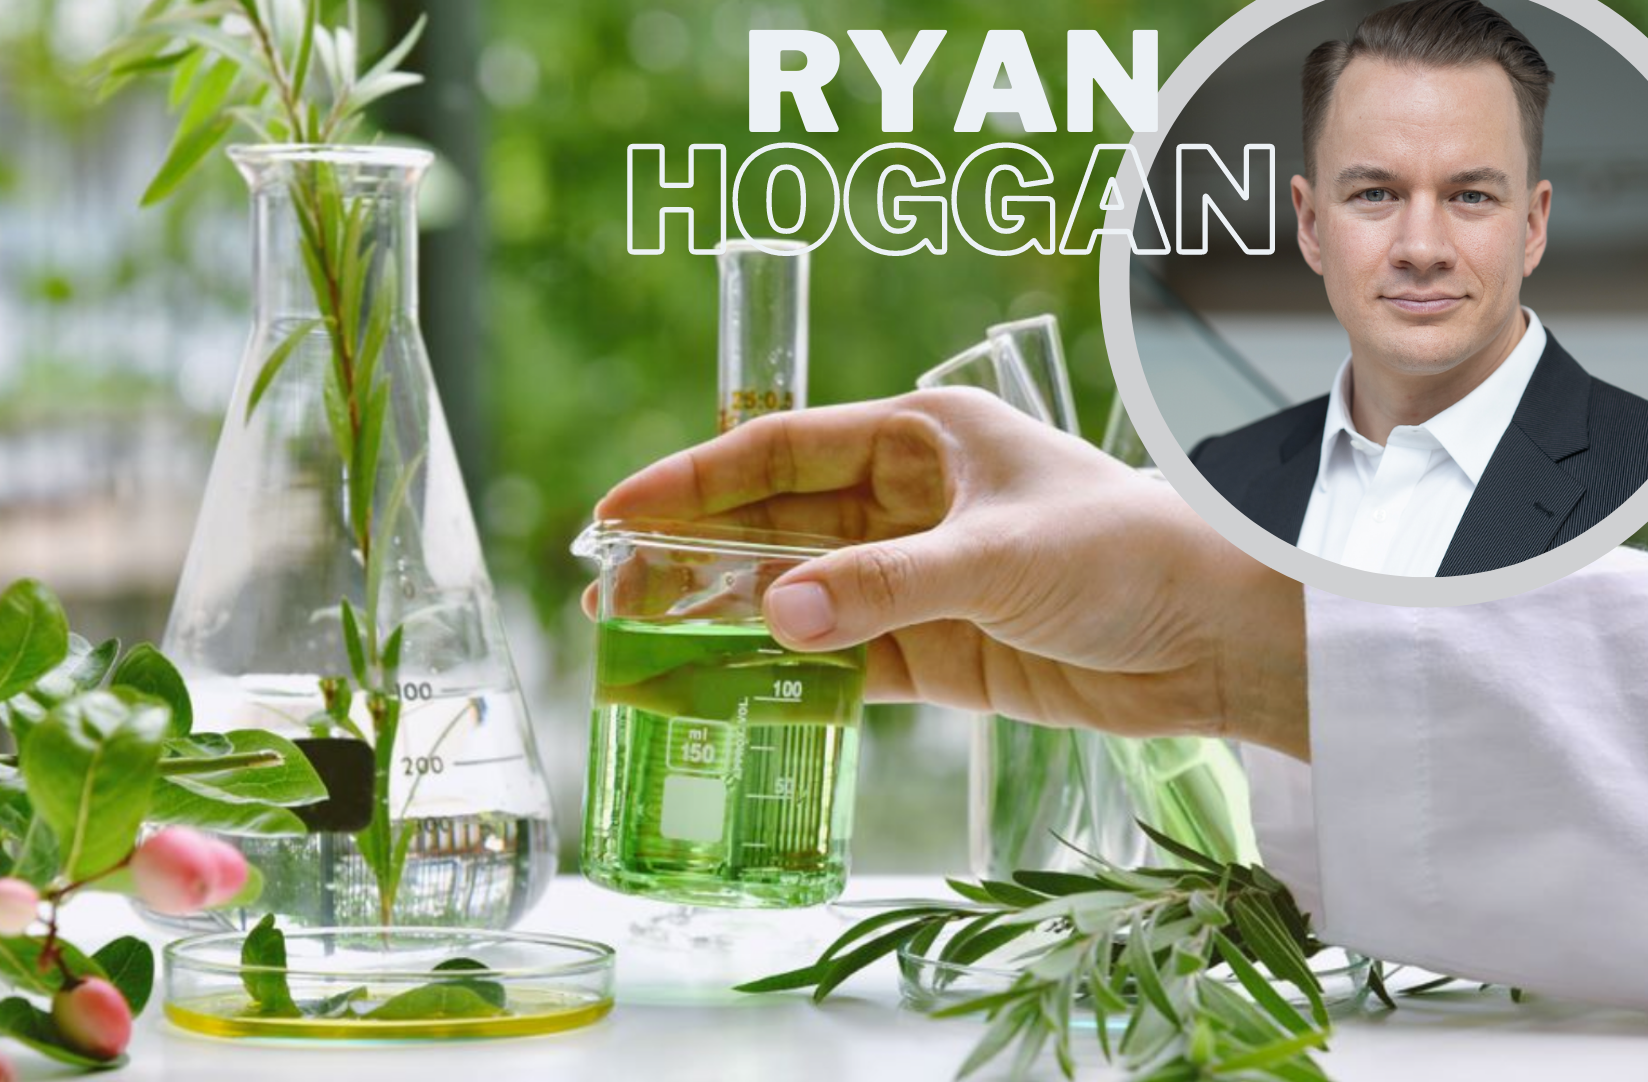 Why Executive Ryan Dean Hoggan Is Excited About Natural Products In 2021